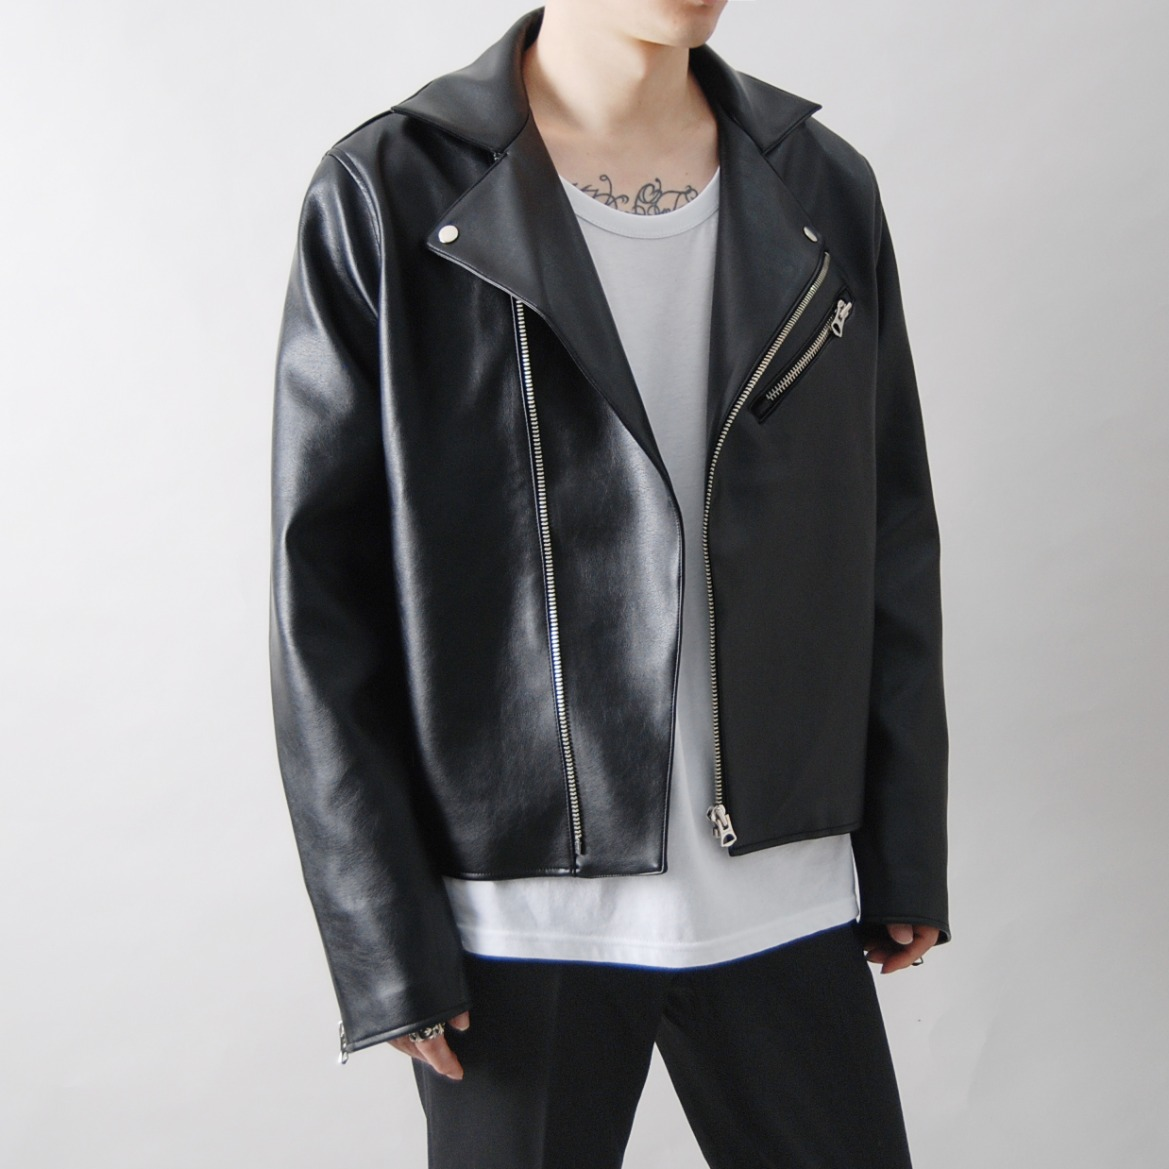 ACN 깁슨 라이더 자켓 - ACN GIBSON LEATHER JACKET